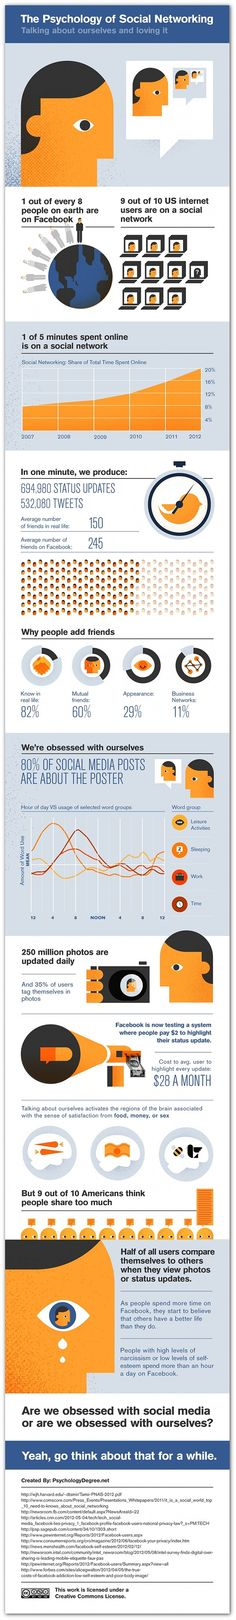 The psychology of social networking.